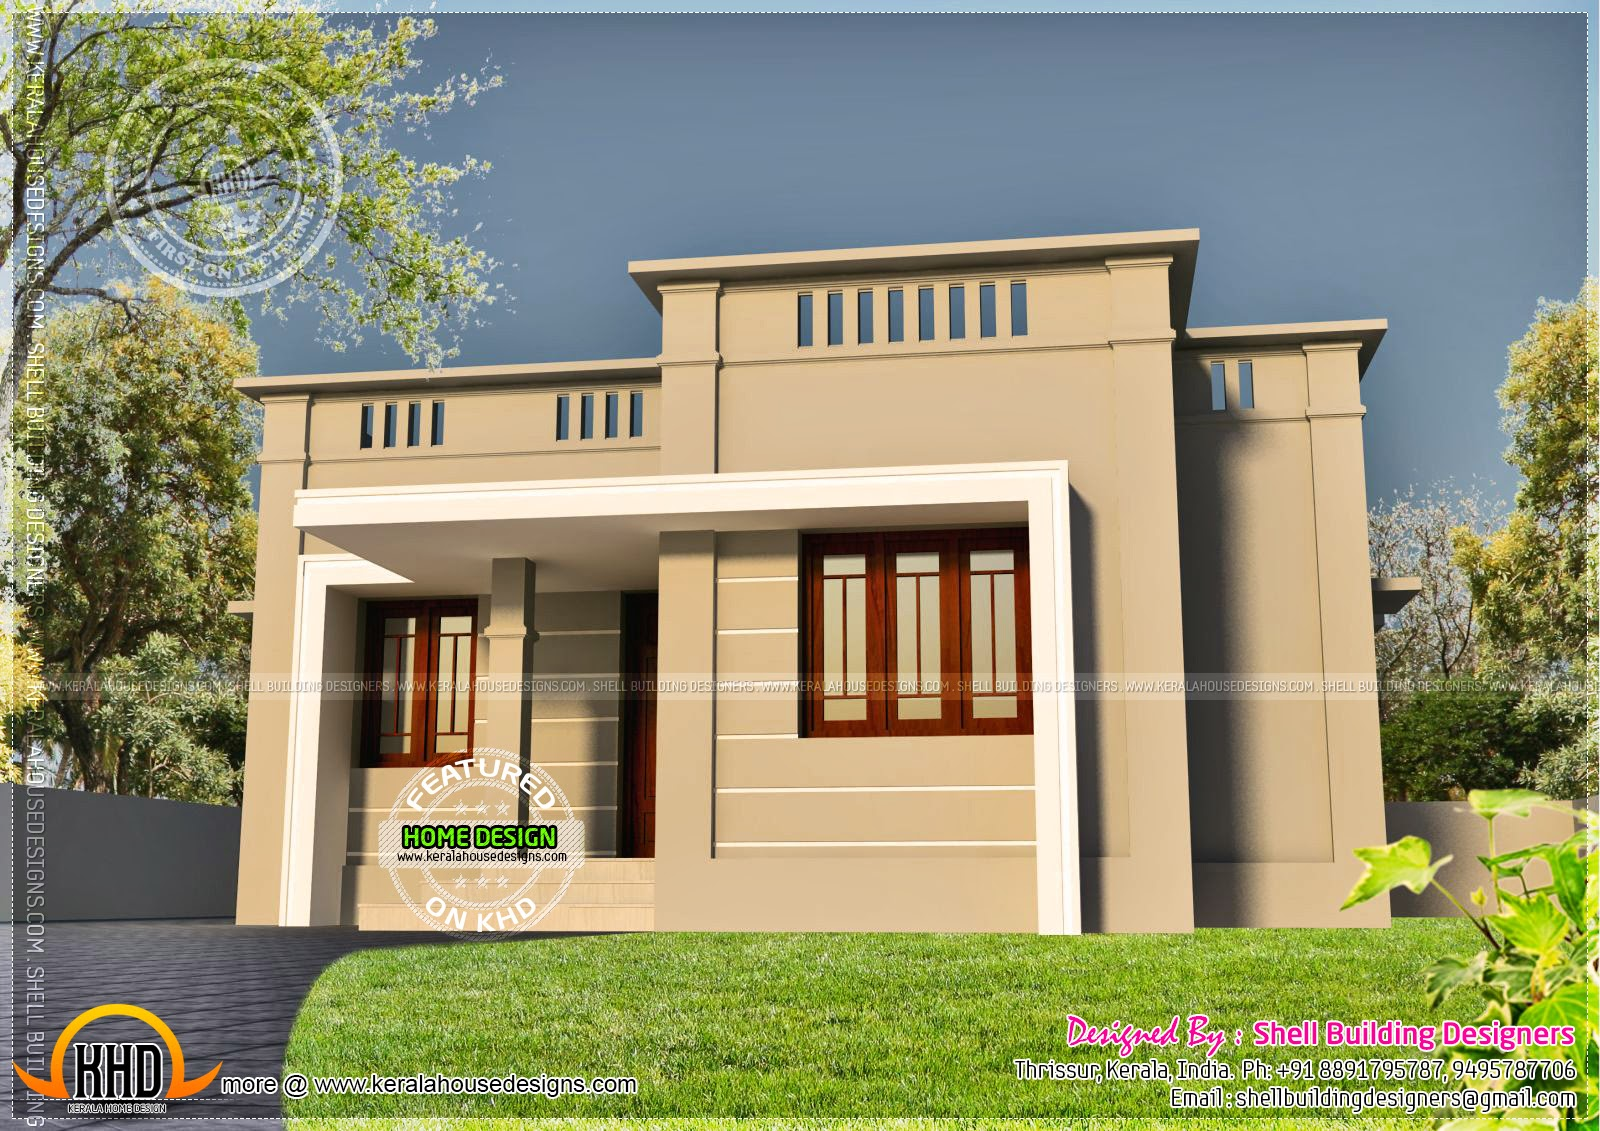 Very small house exterior kerala home design and floor plans Indian small house exterior design